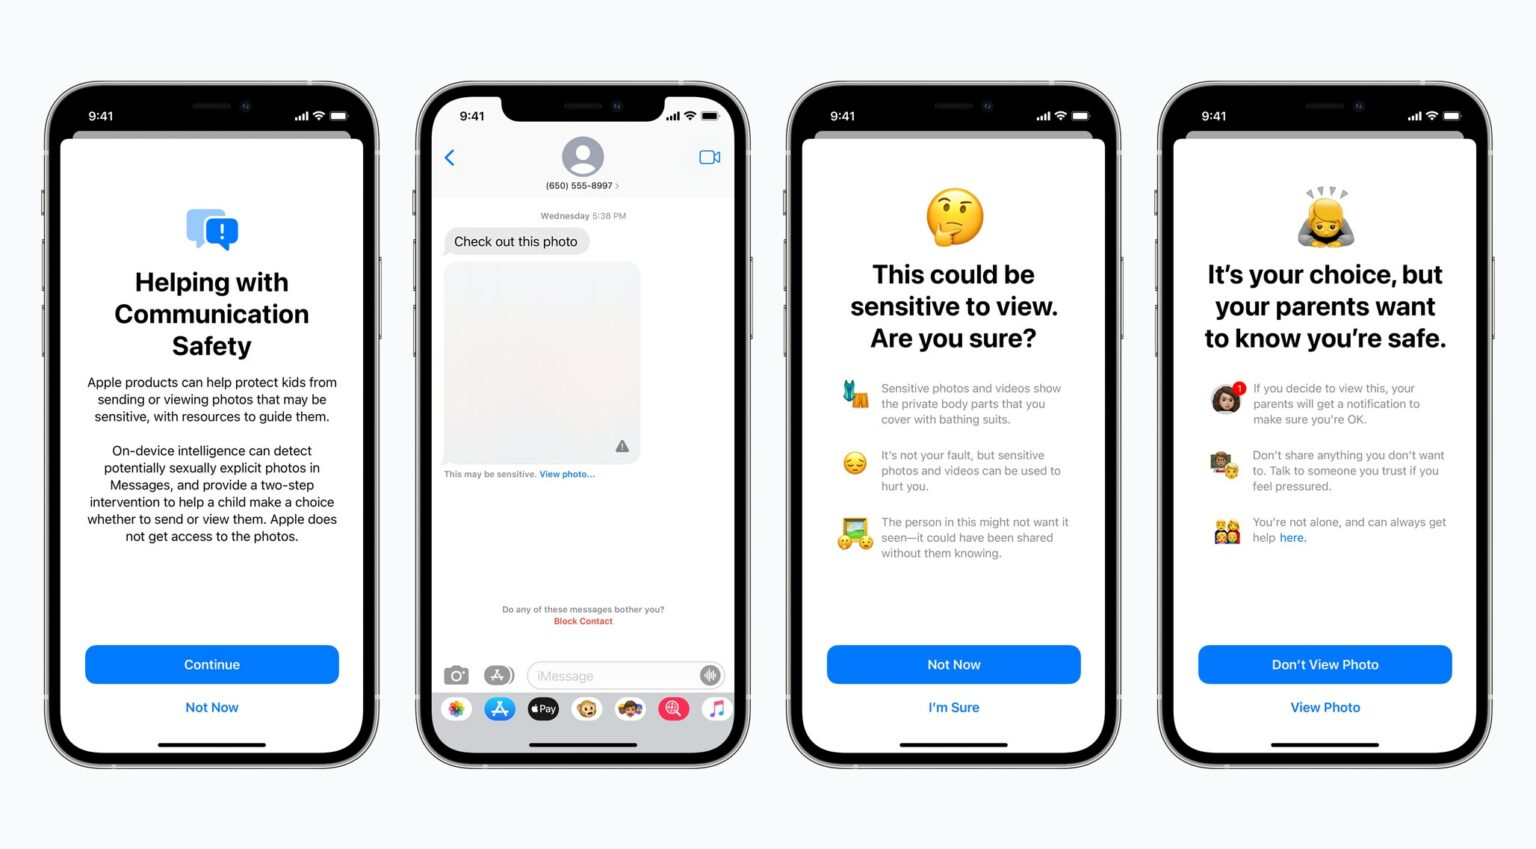 iPhone Messages app will warn parents if kids send, receive nude photos